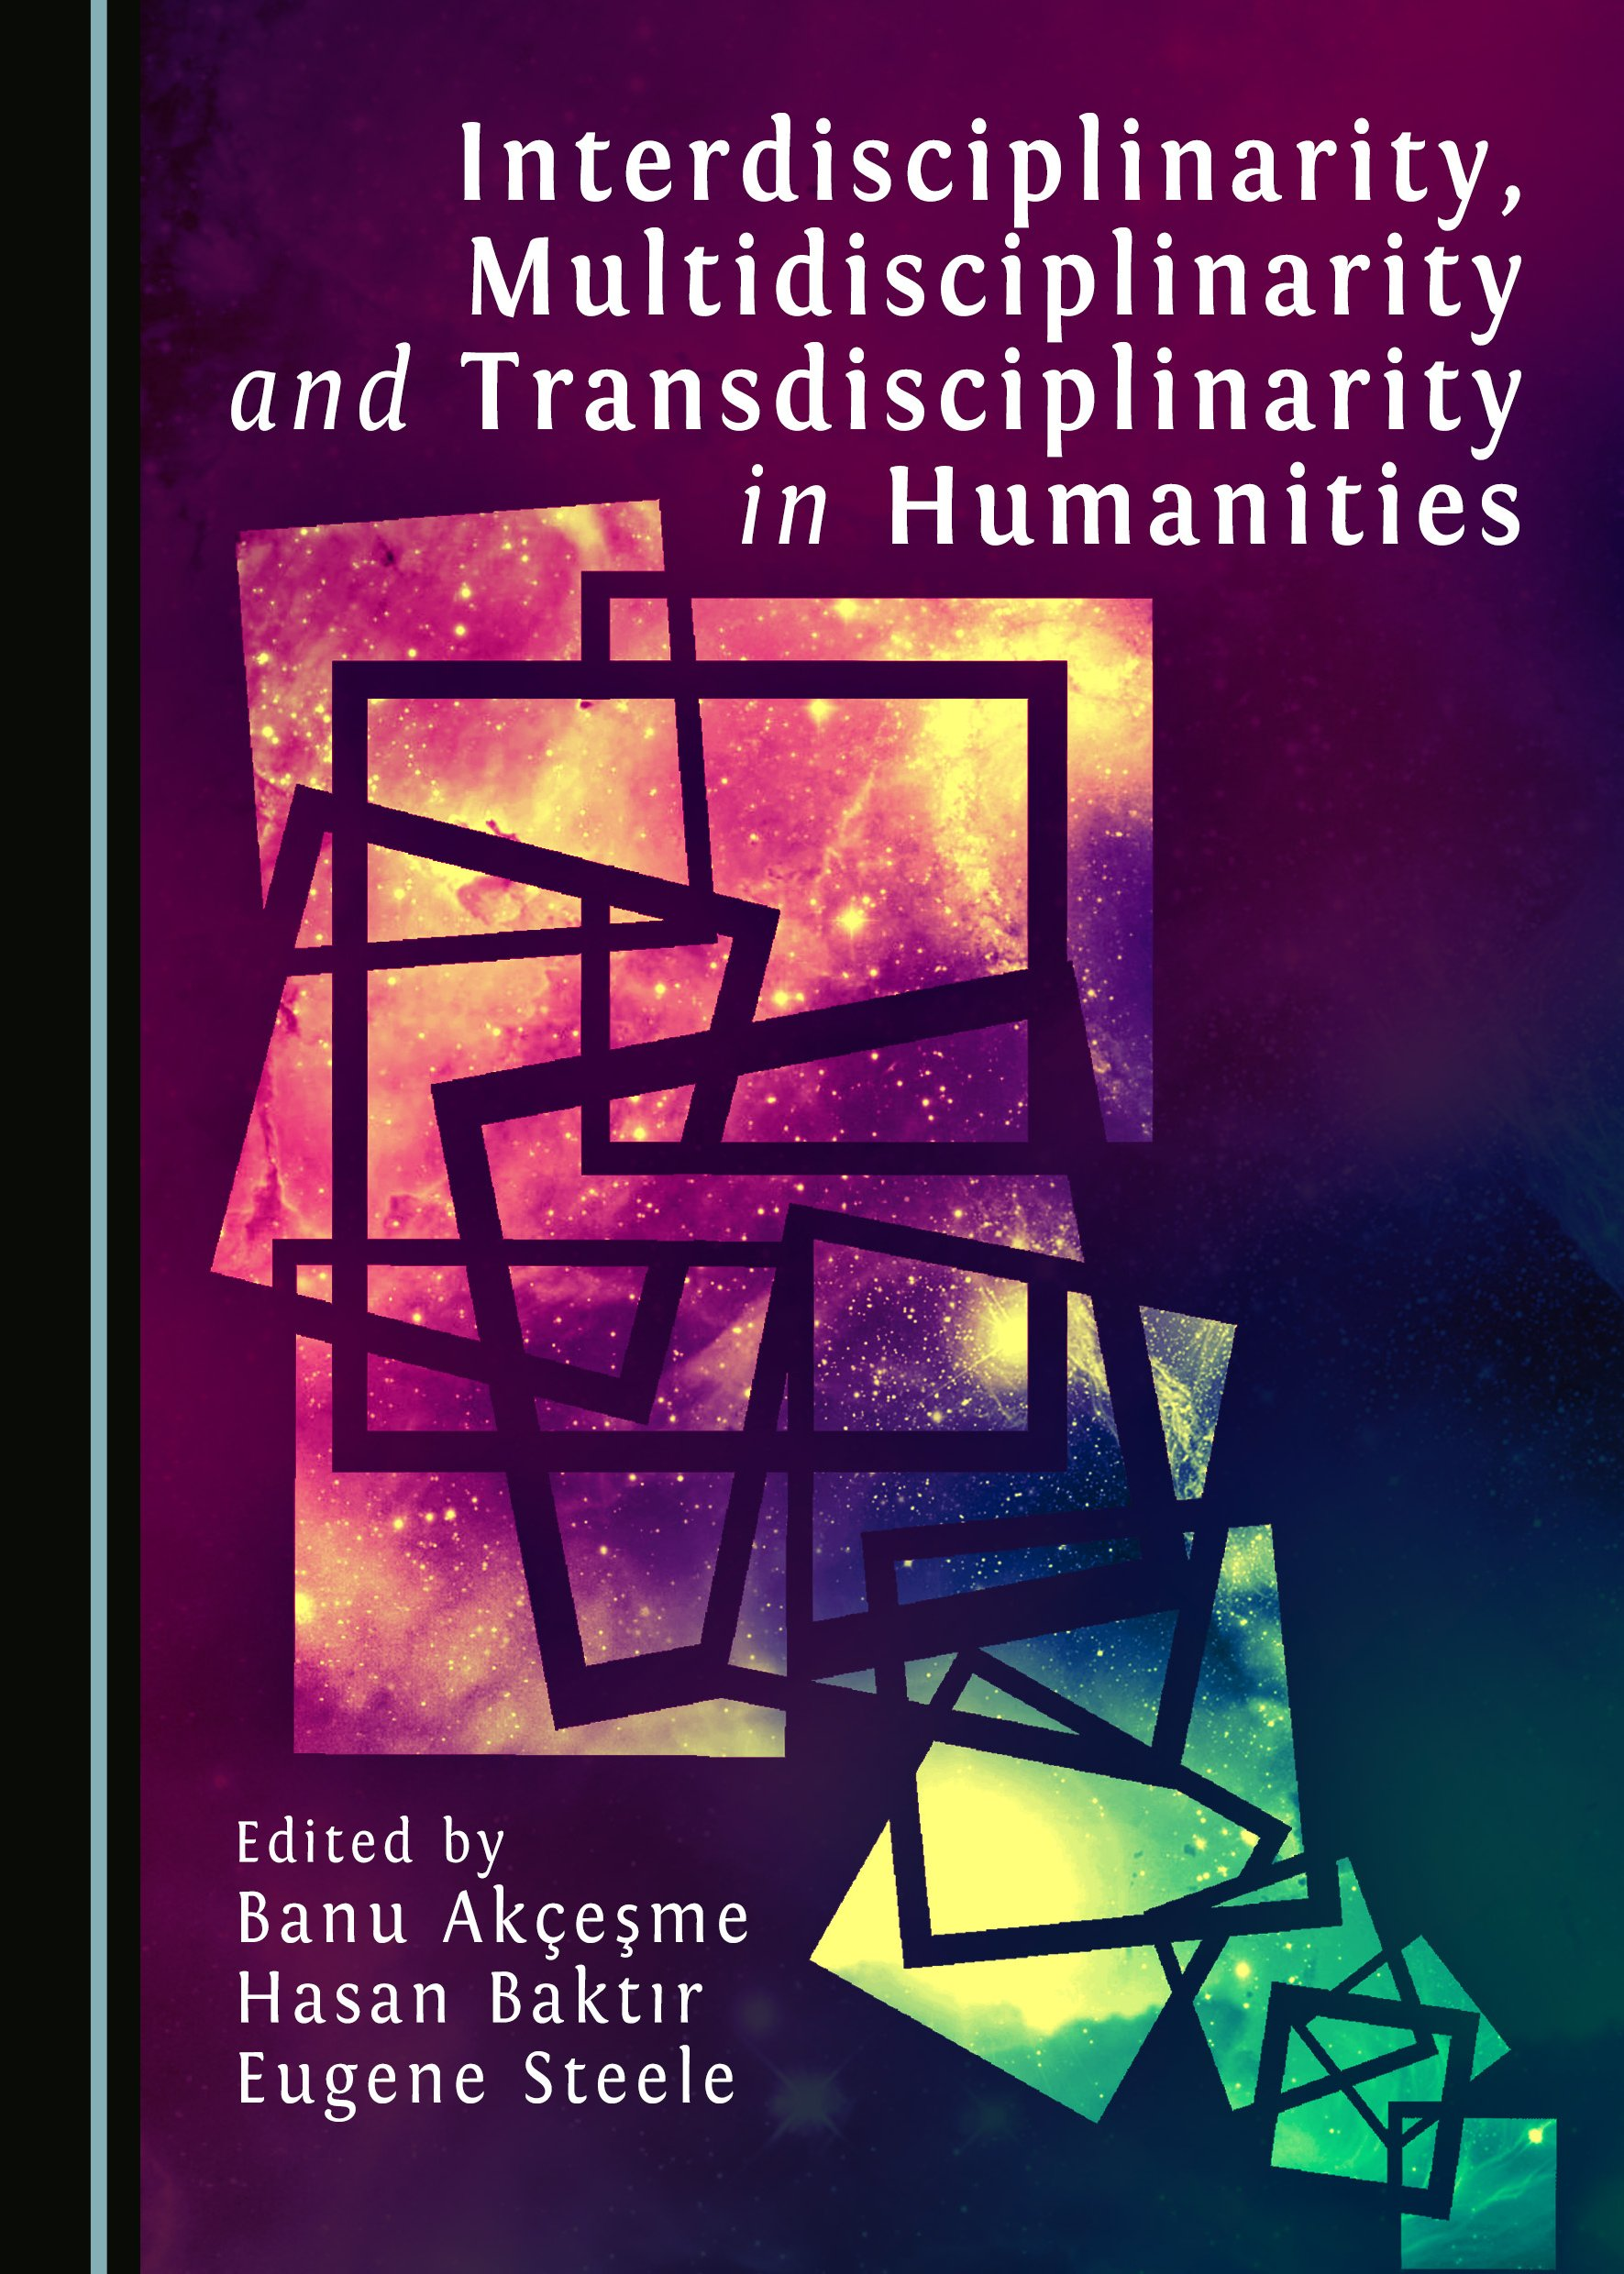 Interdisciplinarity, Multidisciplinarity and Transdisciplinarity in Humanities